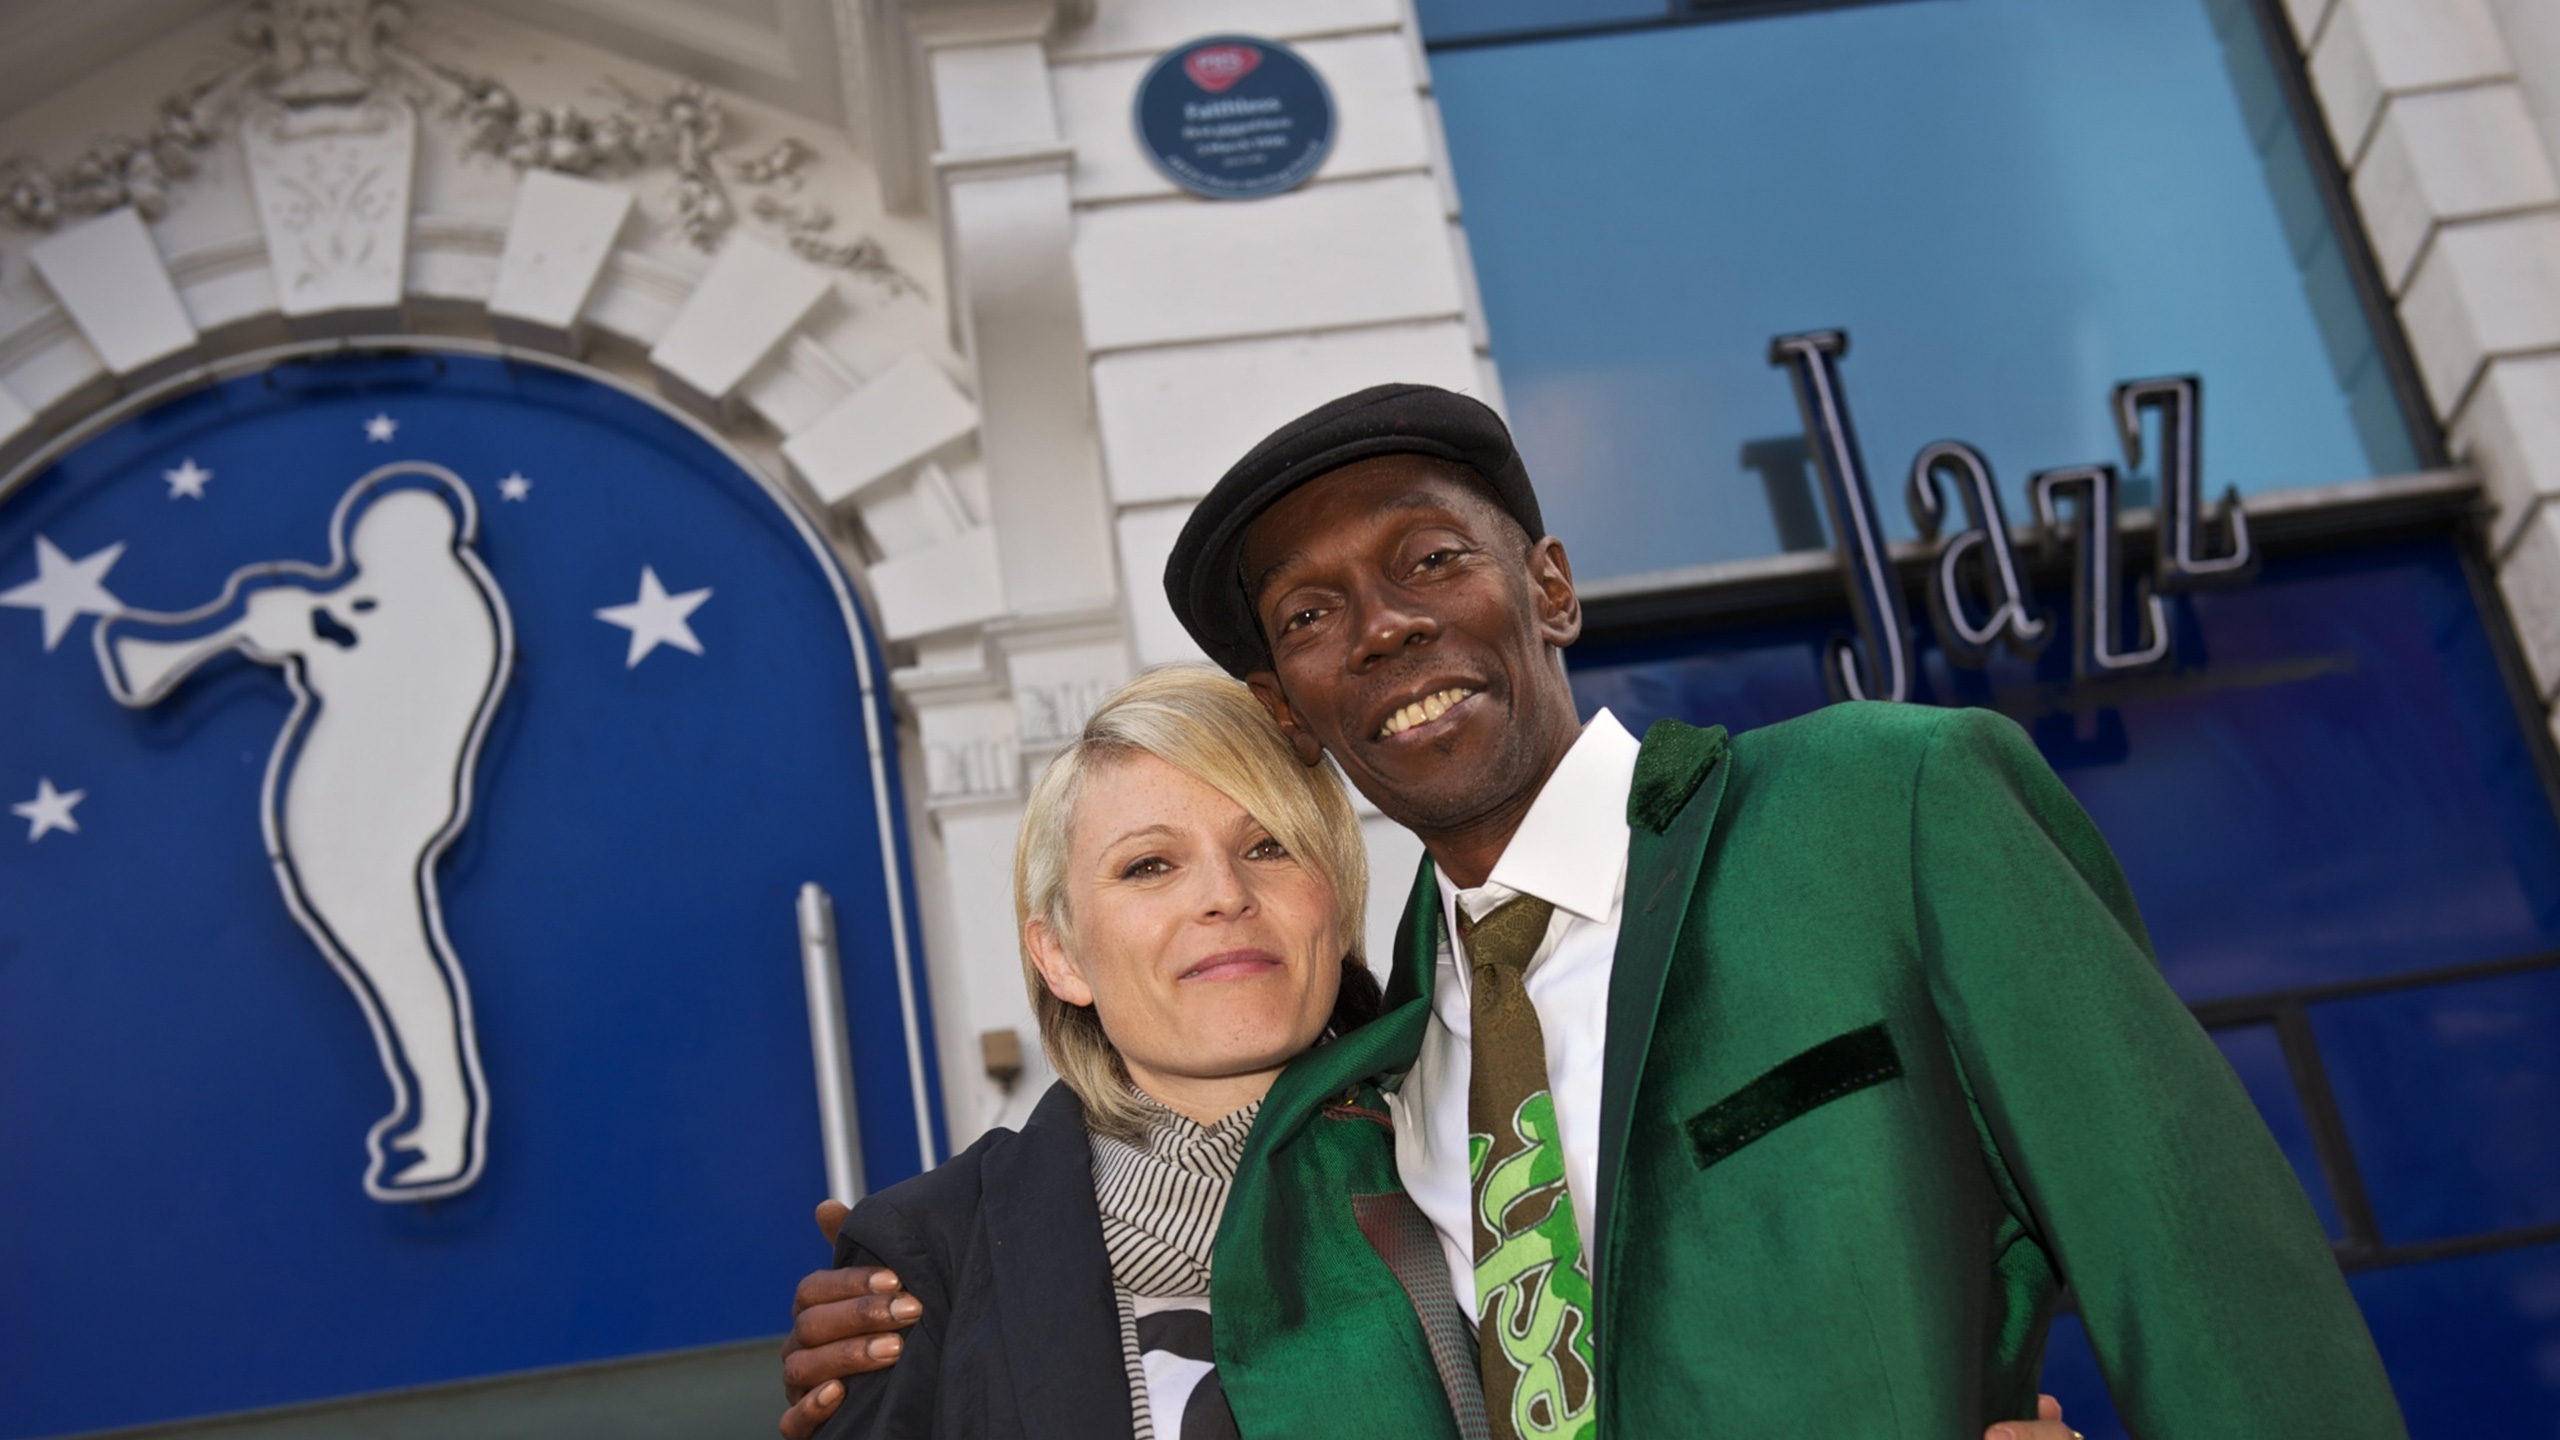 Sister Bliss and Maxi Jazz of Faithless with the Jazz Cafe's Heritage Award plaque